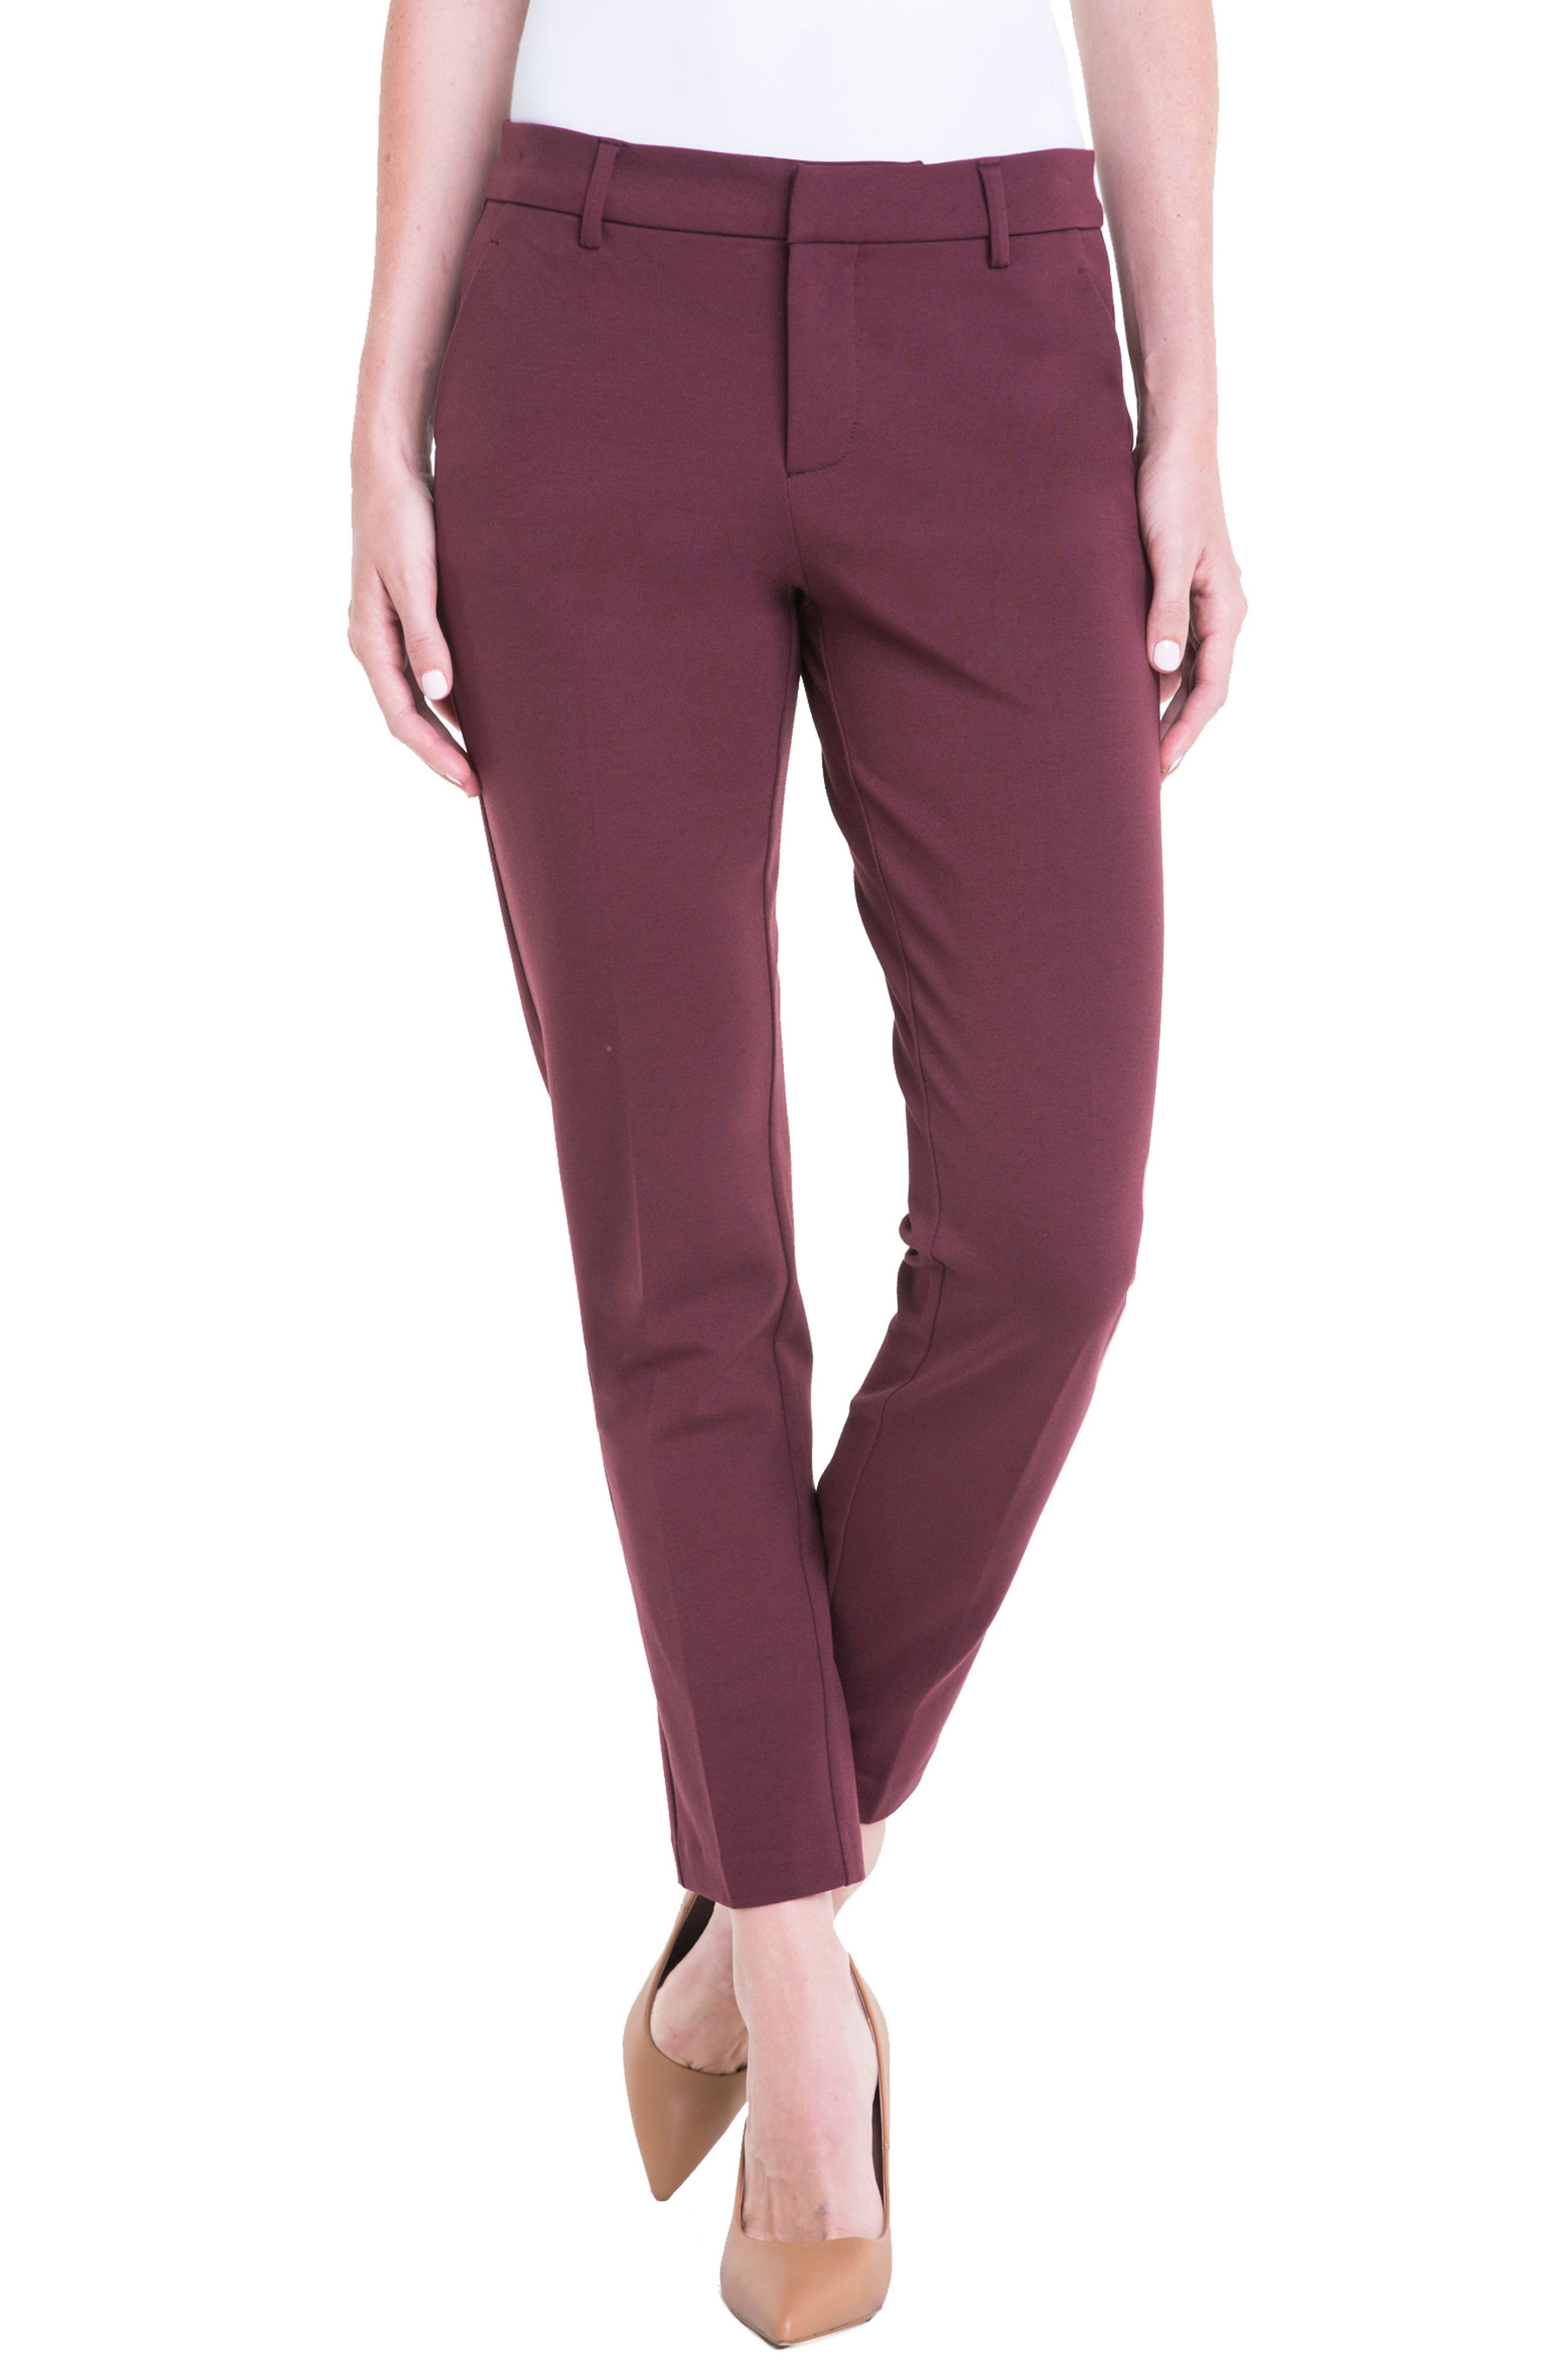 Liverpool Jeans Company Kelsey Knit Trousers (Regular & Petite)